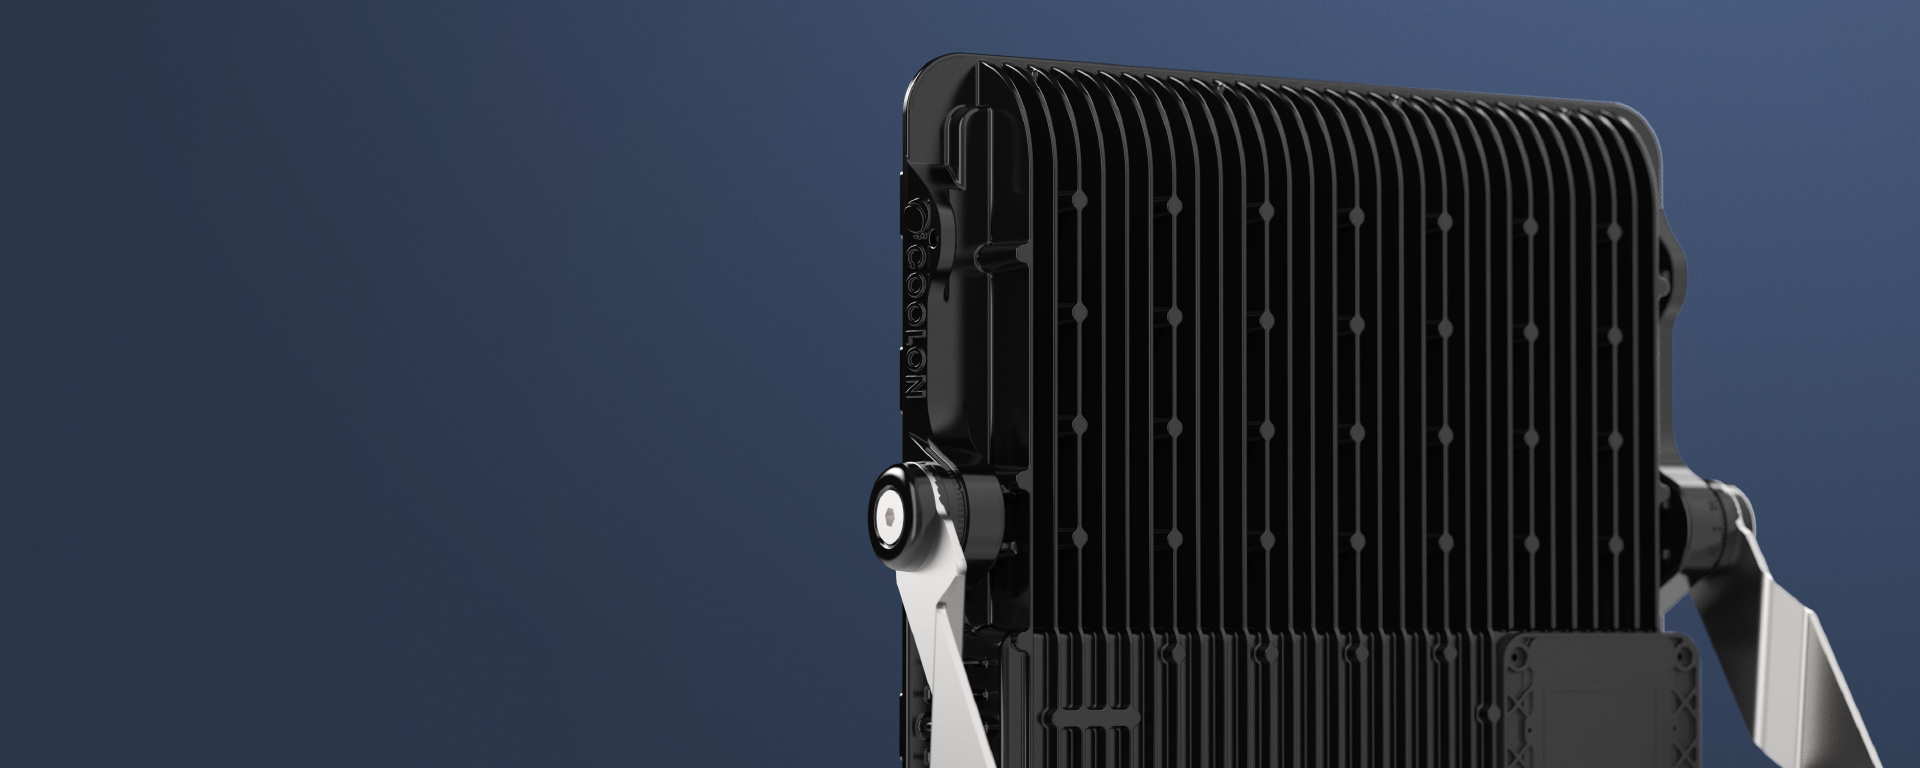 Cassidy LED mining floodlightin application,  view from the back, close up on heat sink